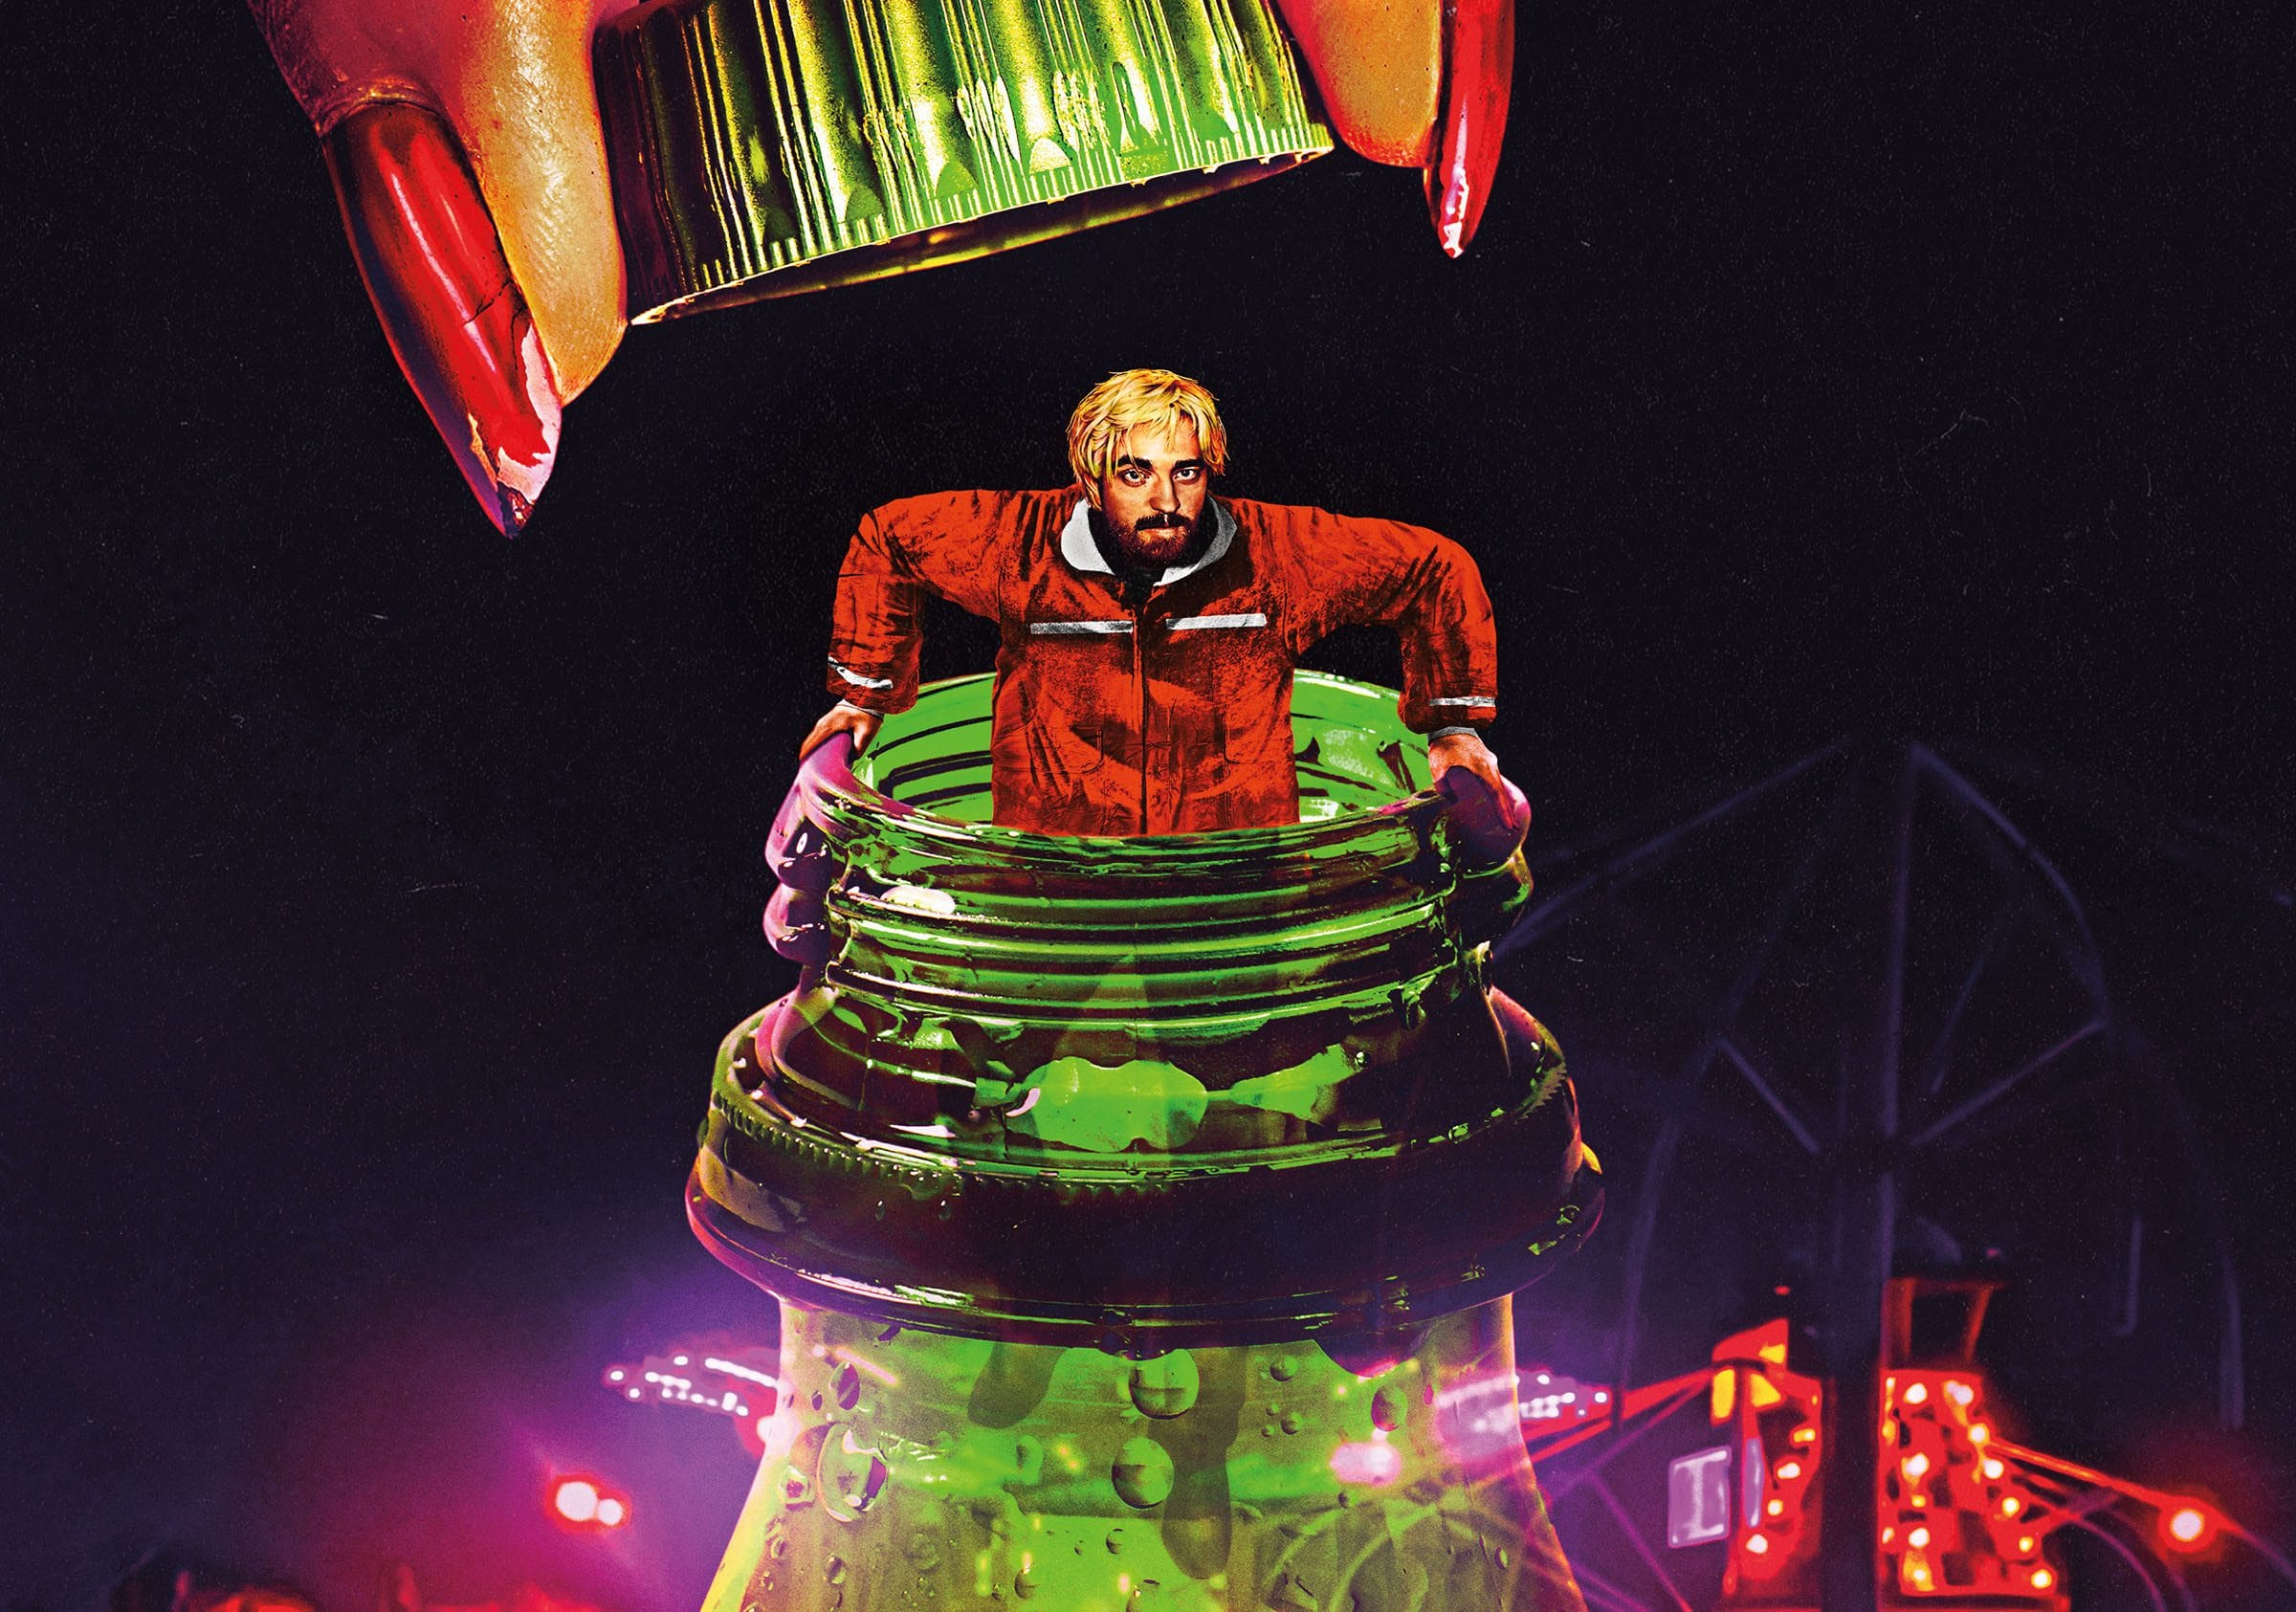 Do date night right this weekend with Film Daily's picks. Embark on a twisted odyssey in 'Good Time', starring Robert Pattinson in the lead.